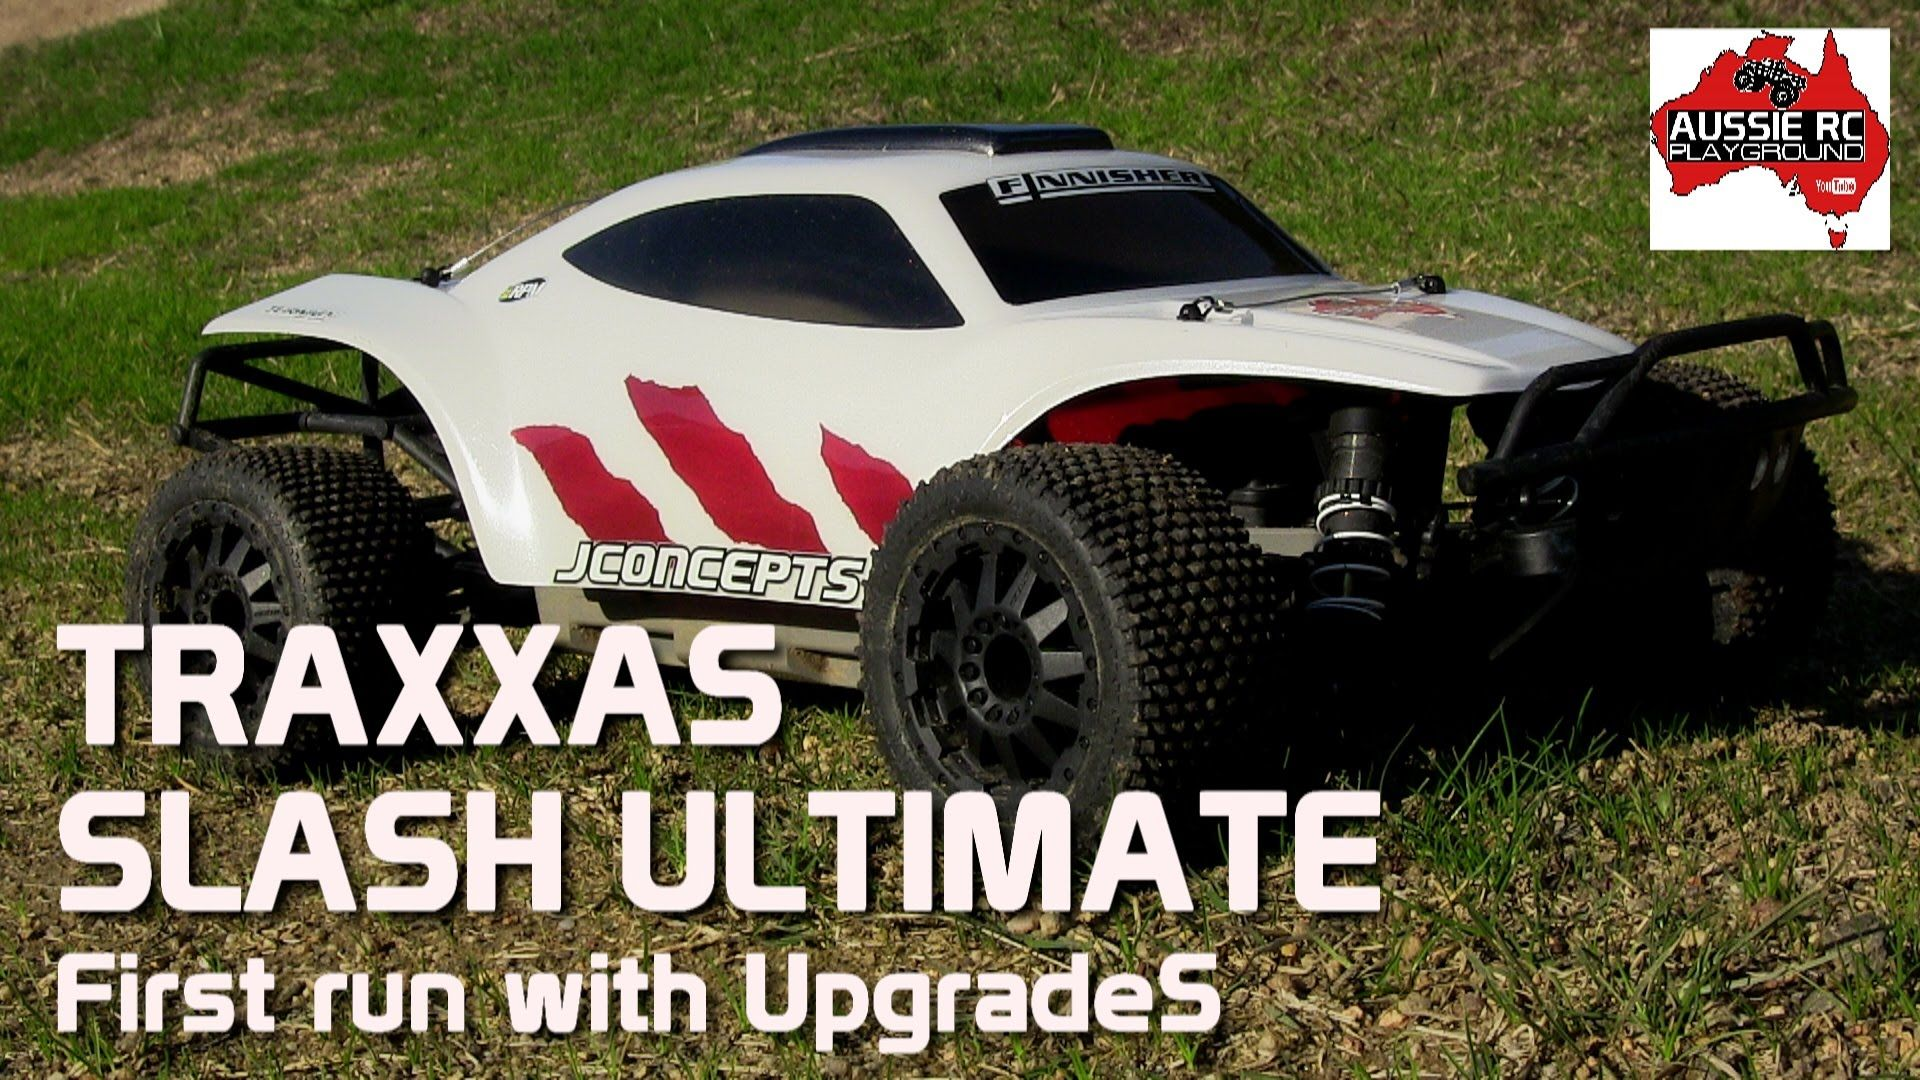 Traxxas Slash Ultimate with bud upgrades CRAZY Power